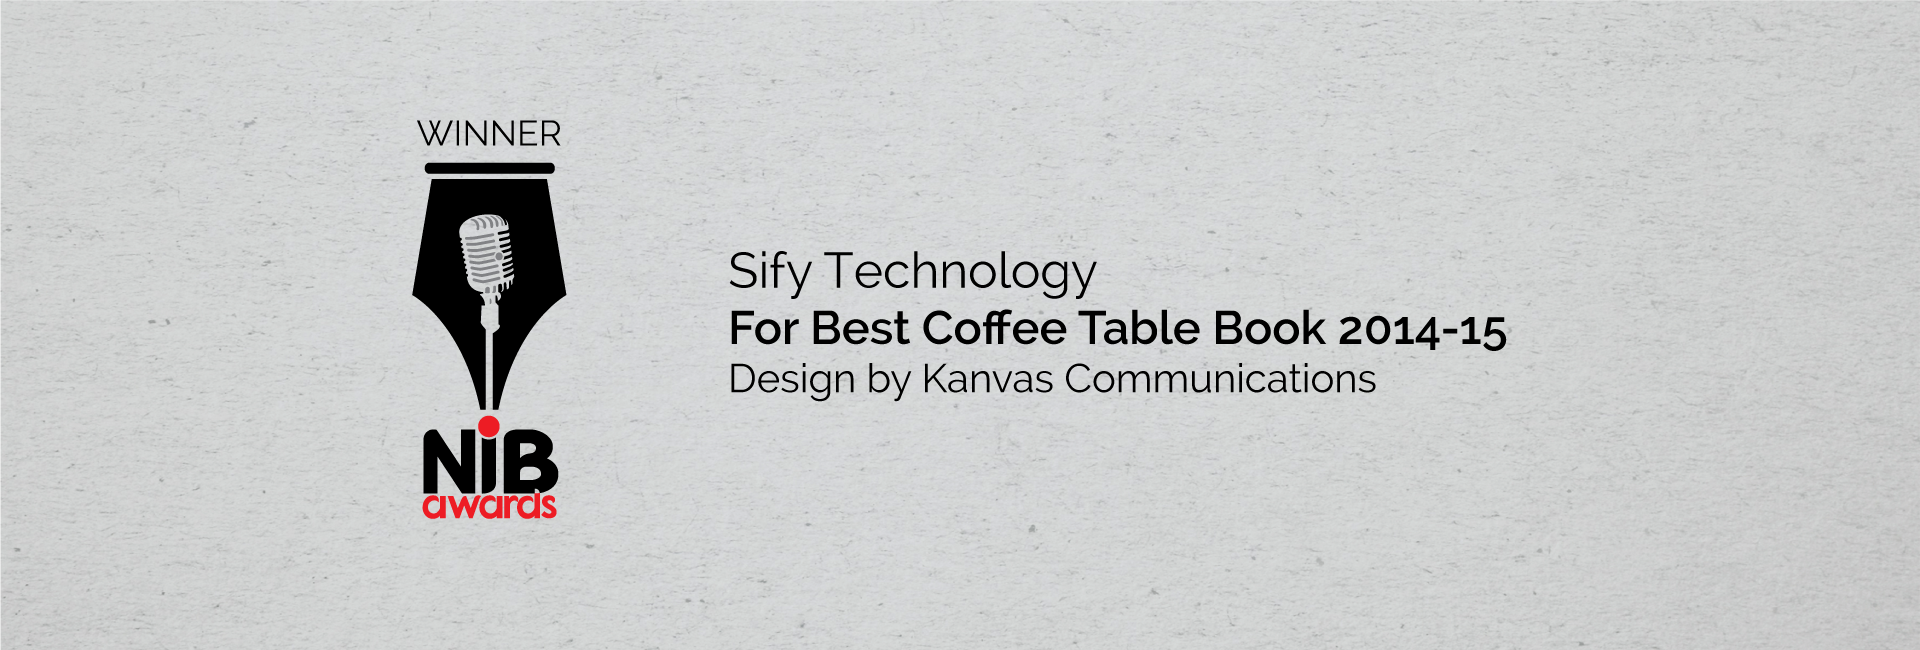 Award Winning Coffee Table Book Designed For Sify Technologies